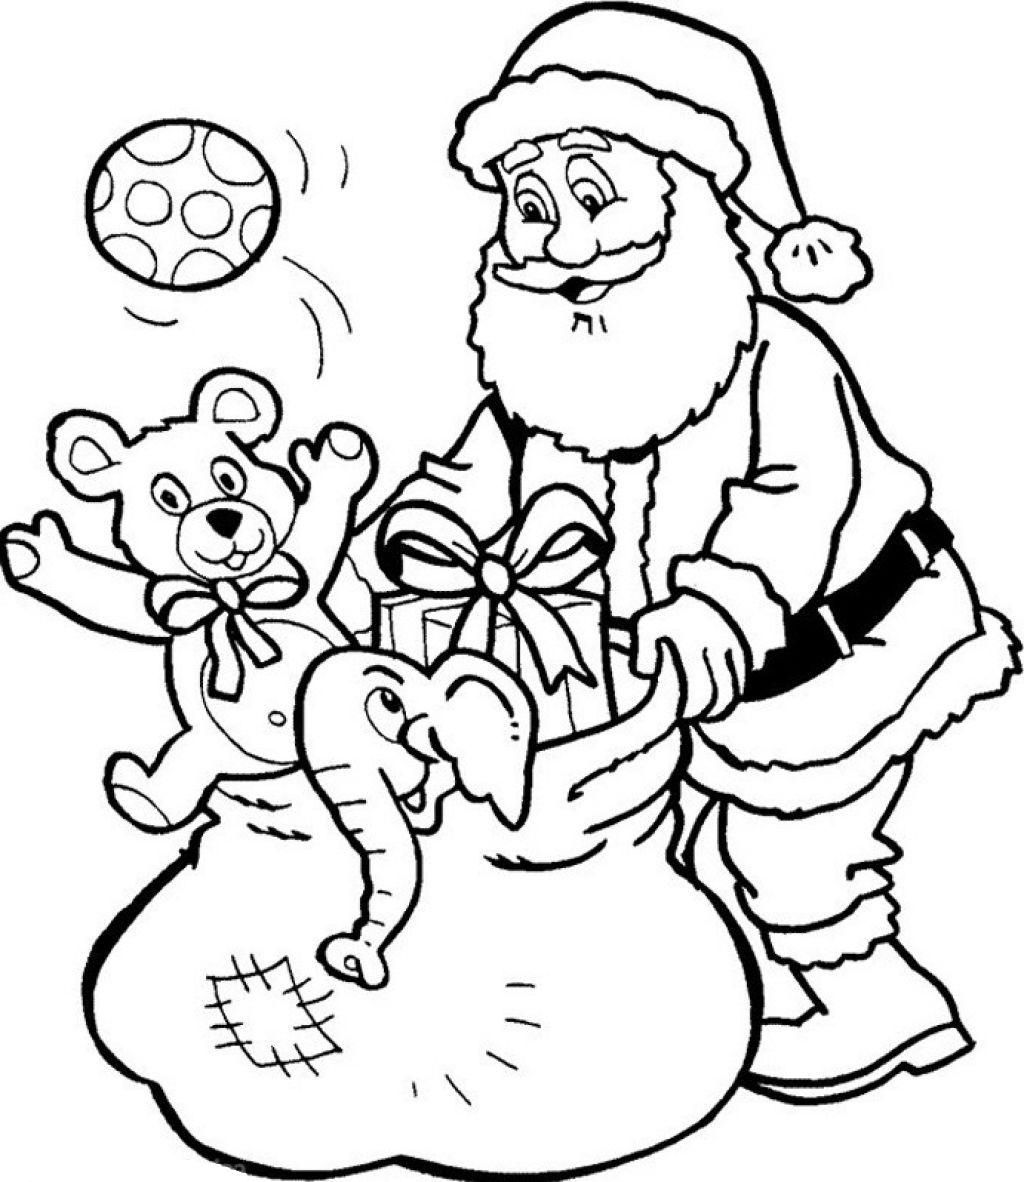 Santa Claus Coloring Pages Santa Coloring Pages Coloring Pages Disney Princess Coloring Pages